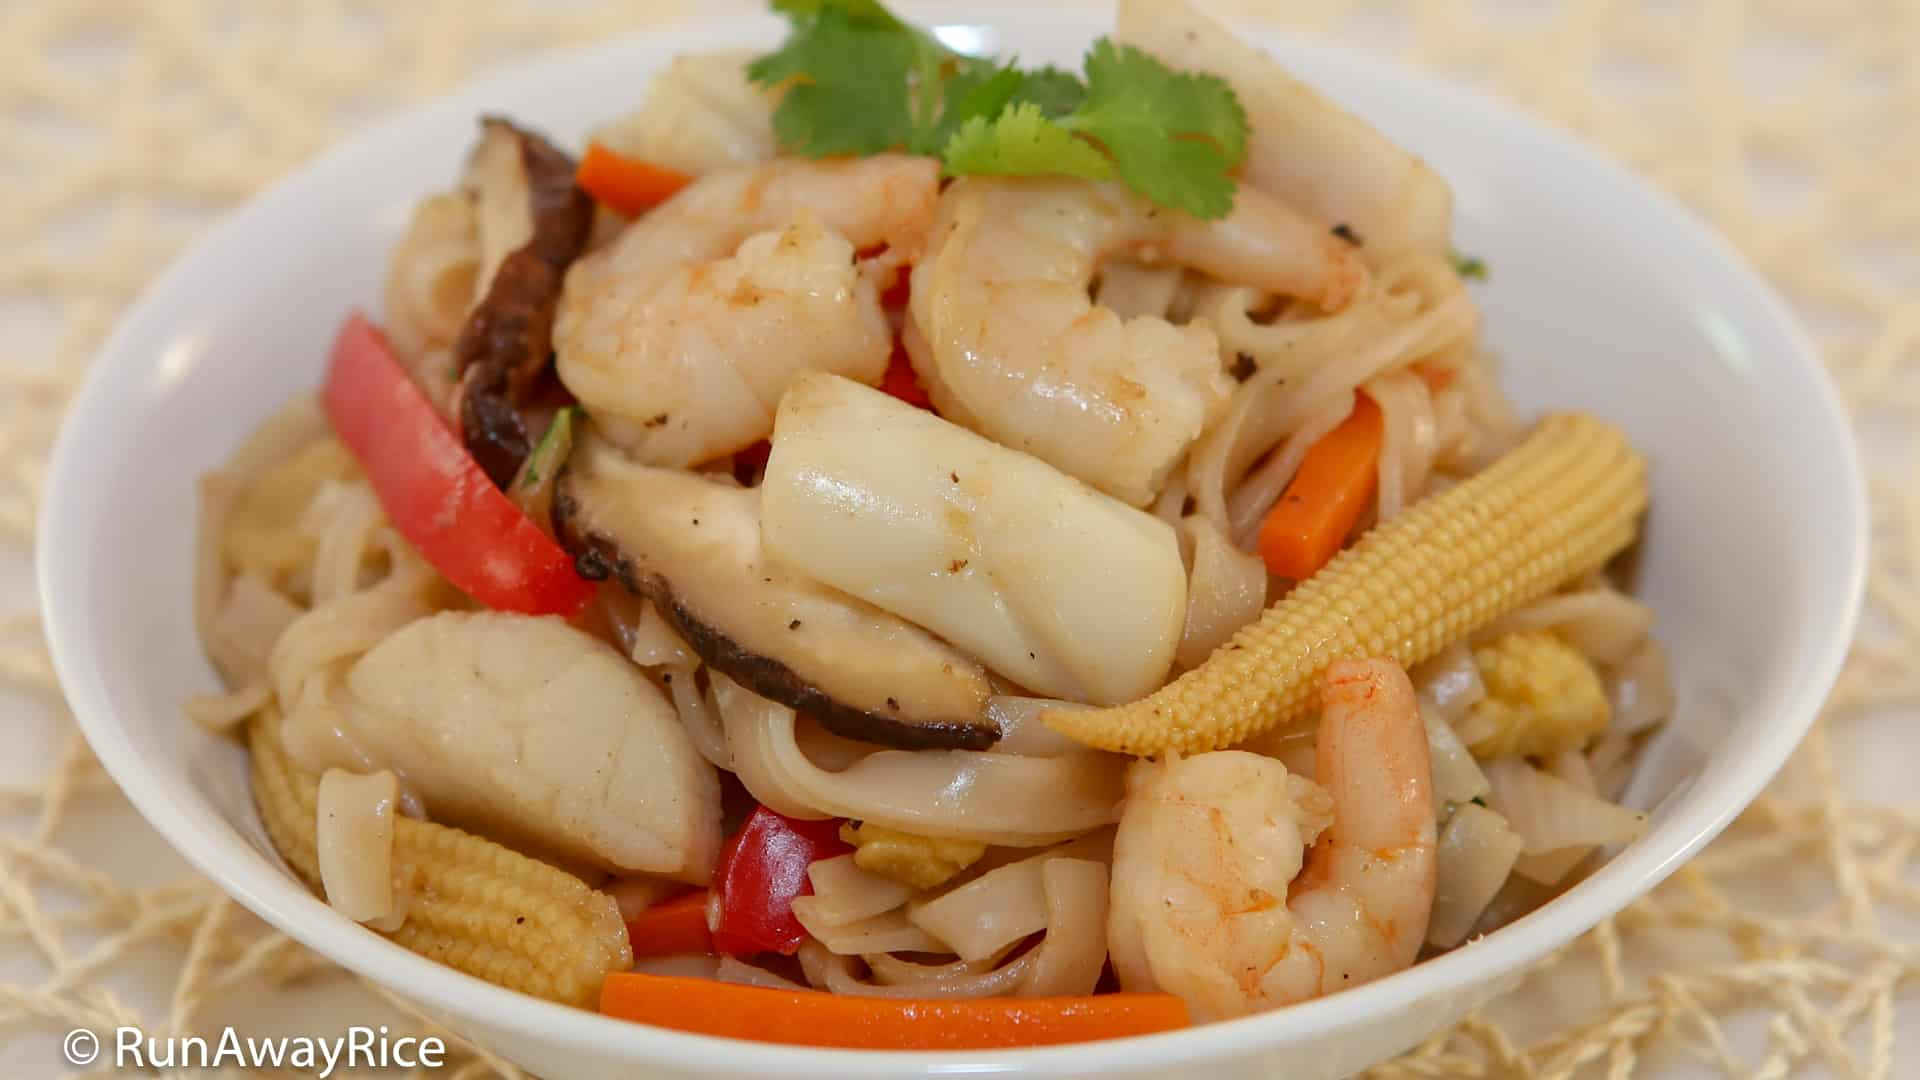 Stir Fried Seafood Noodles Hu Tieu Xao Do Bien Runawayrice